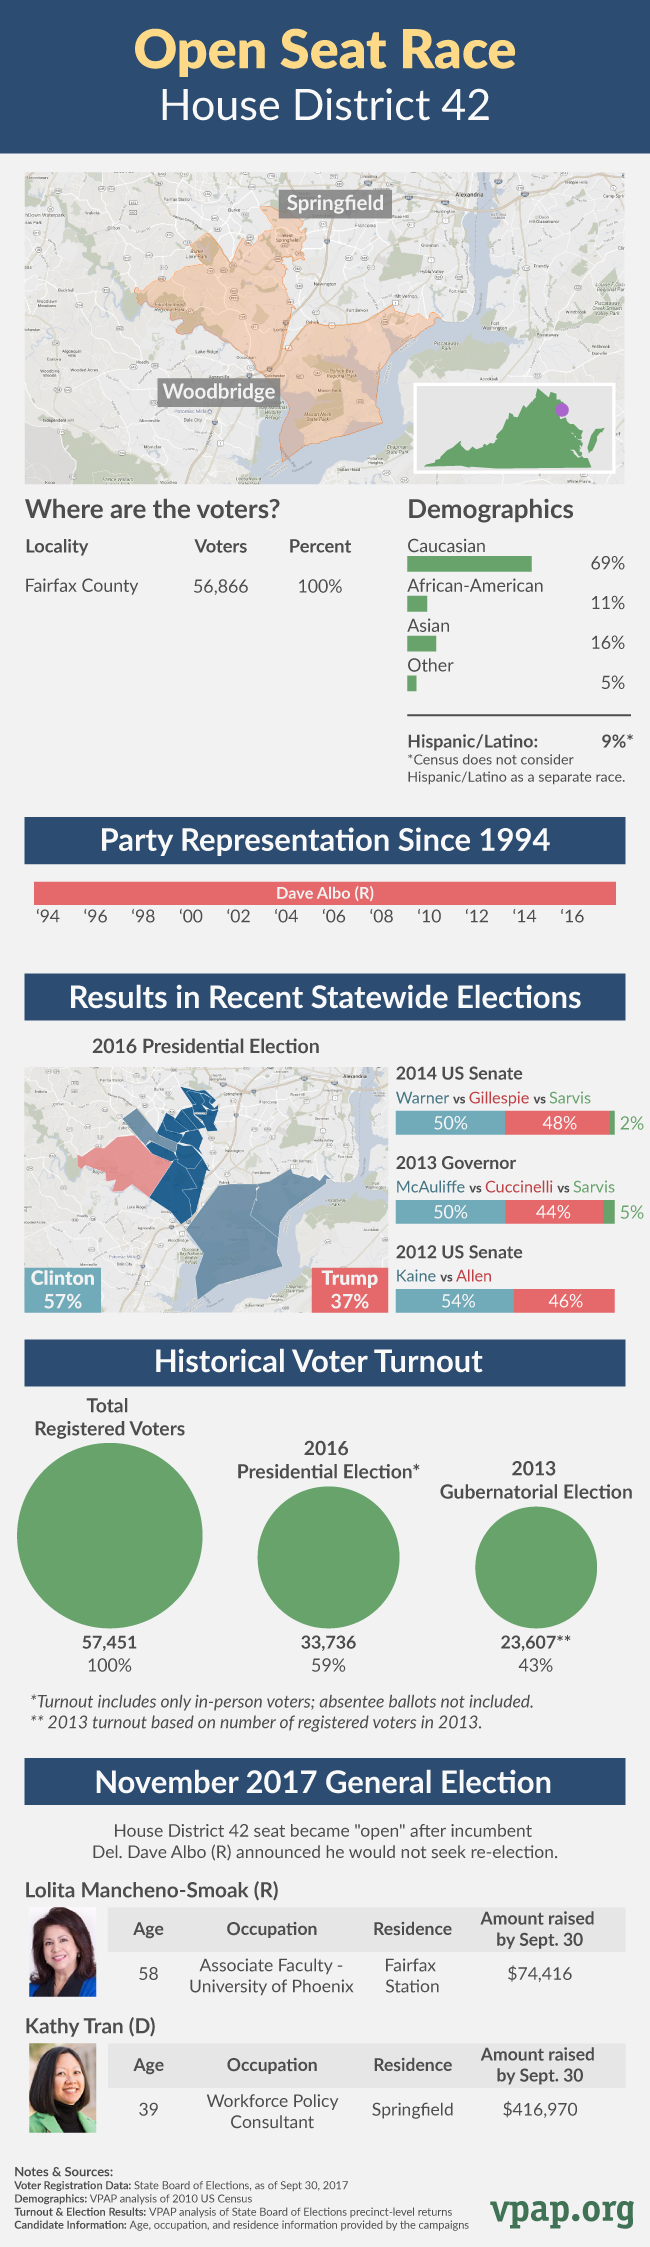 Open Seat Profile: House District 42